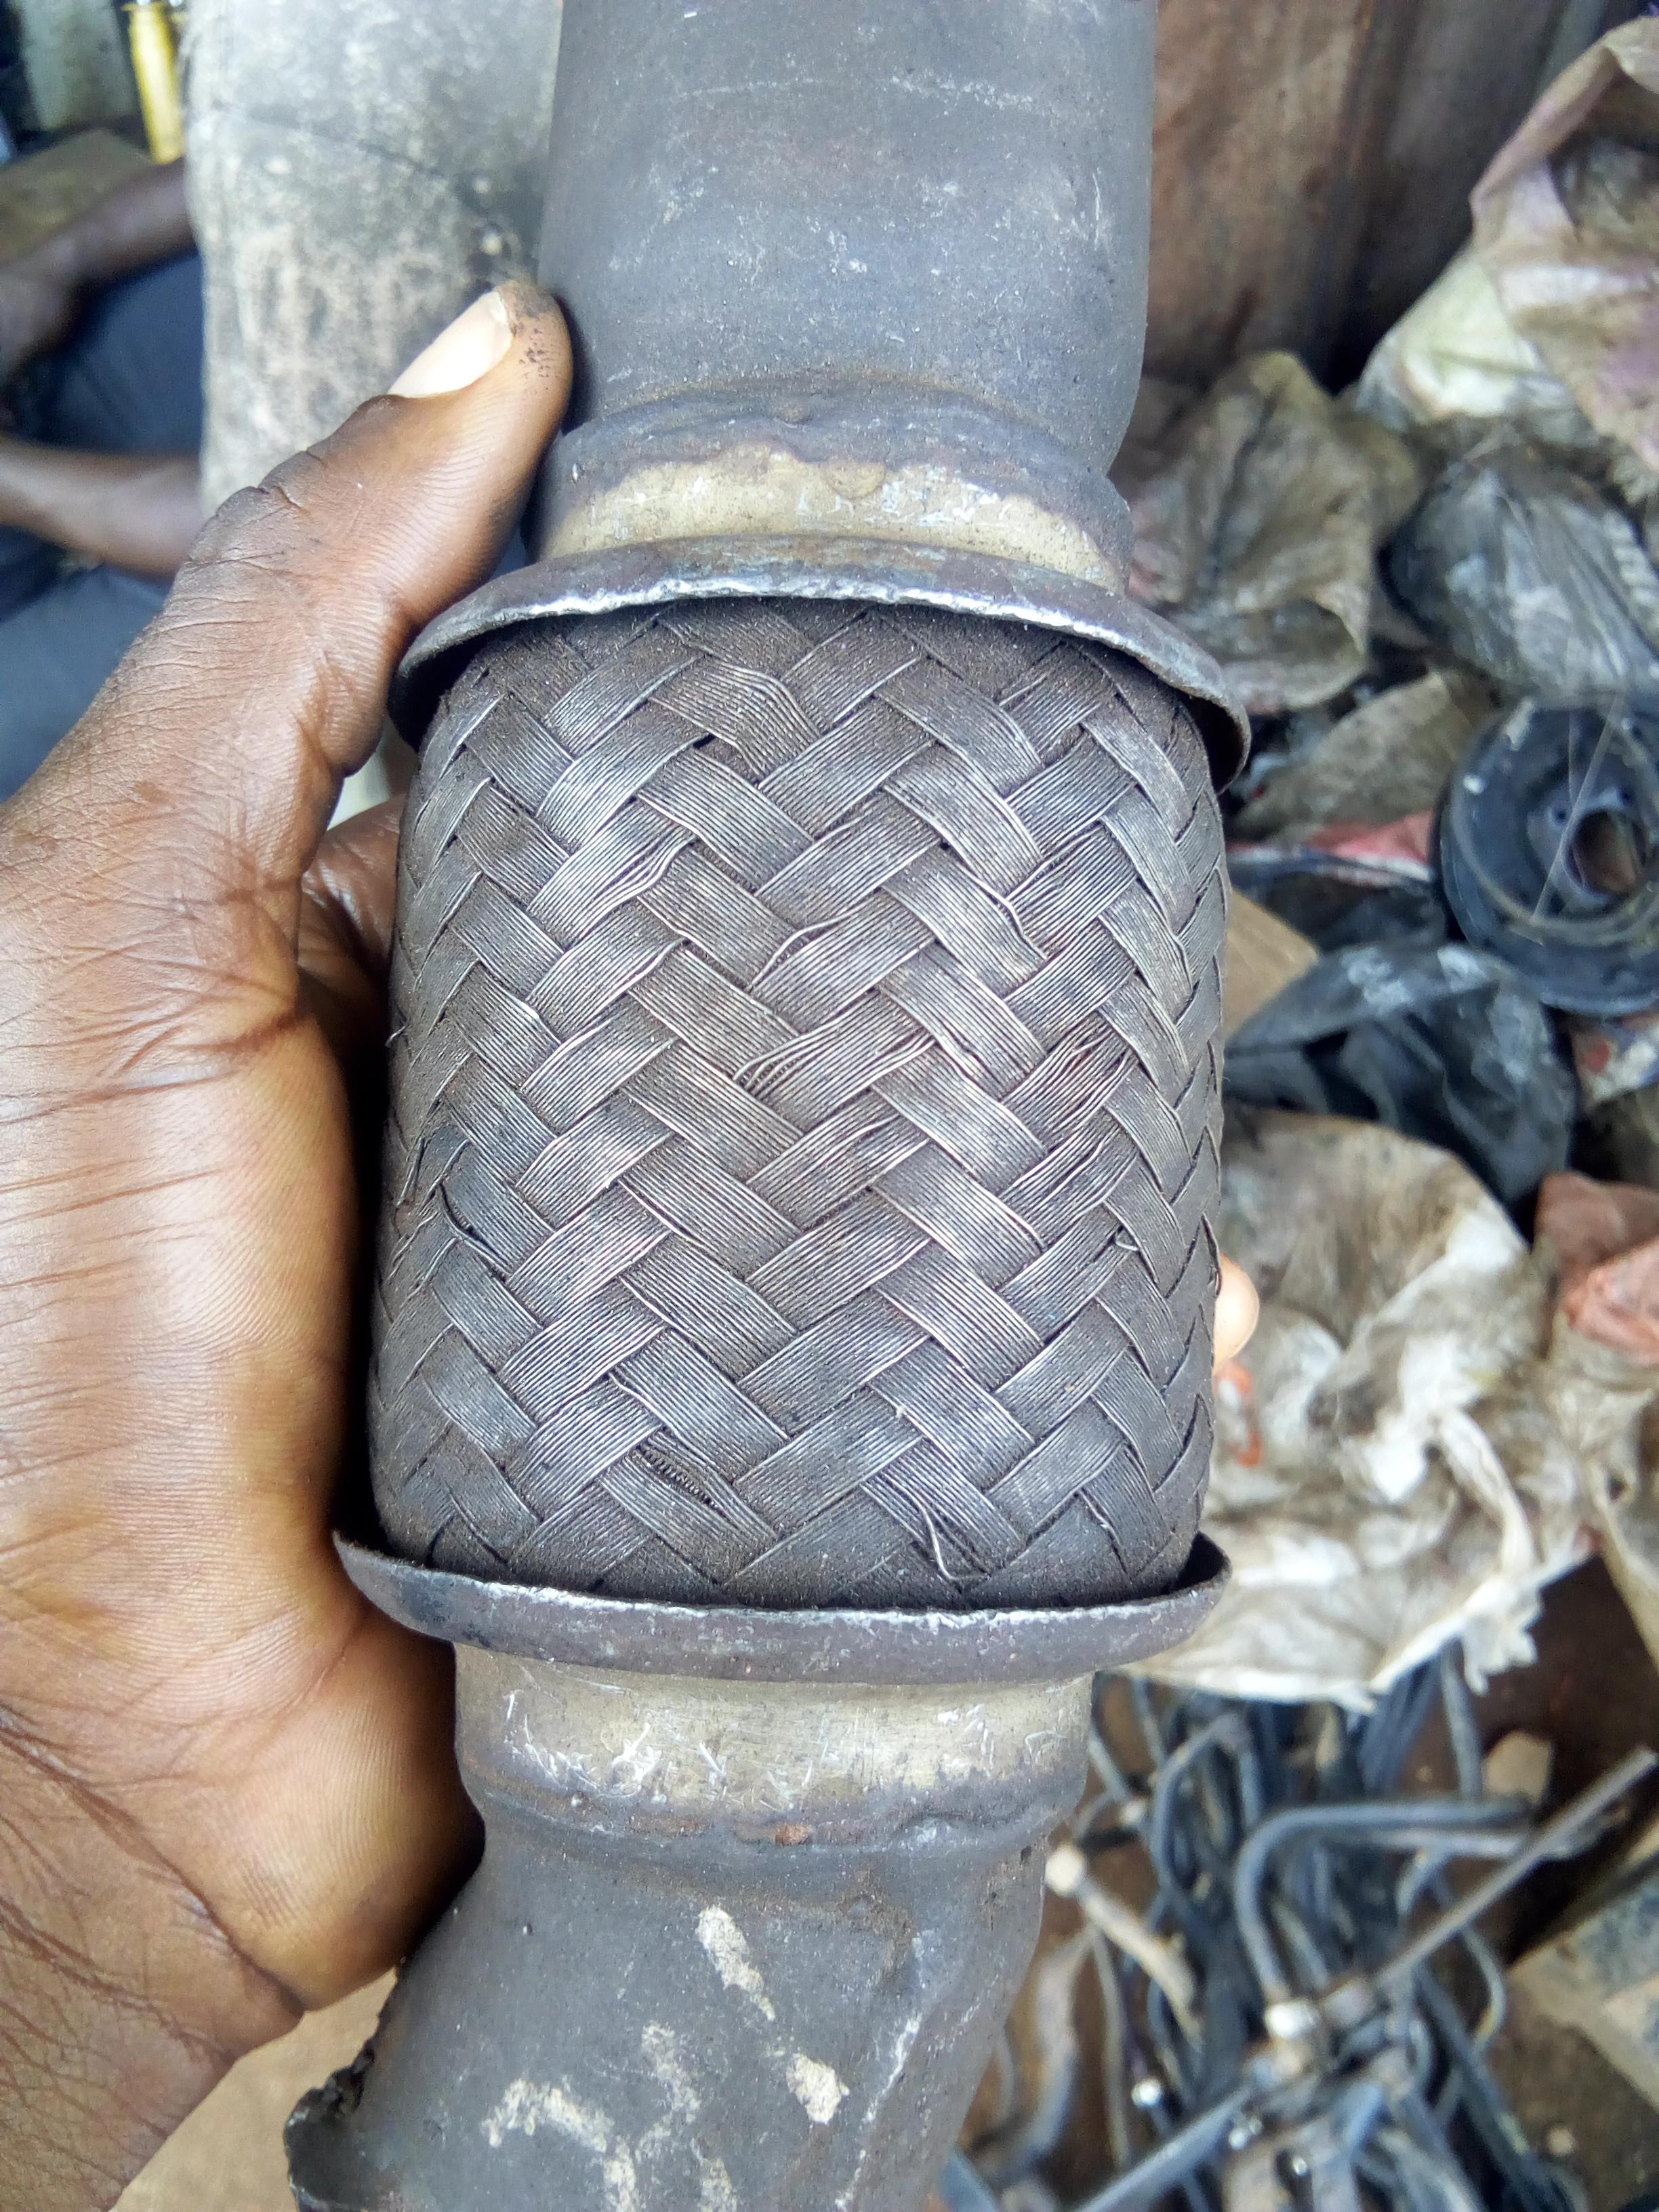 FAIRLY USED EXHAUST NET